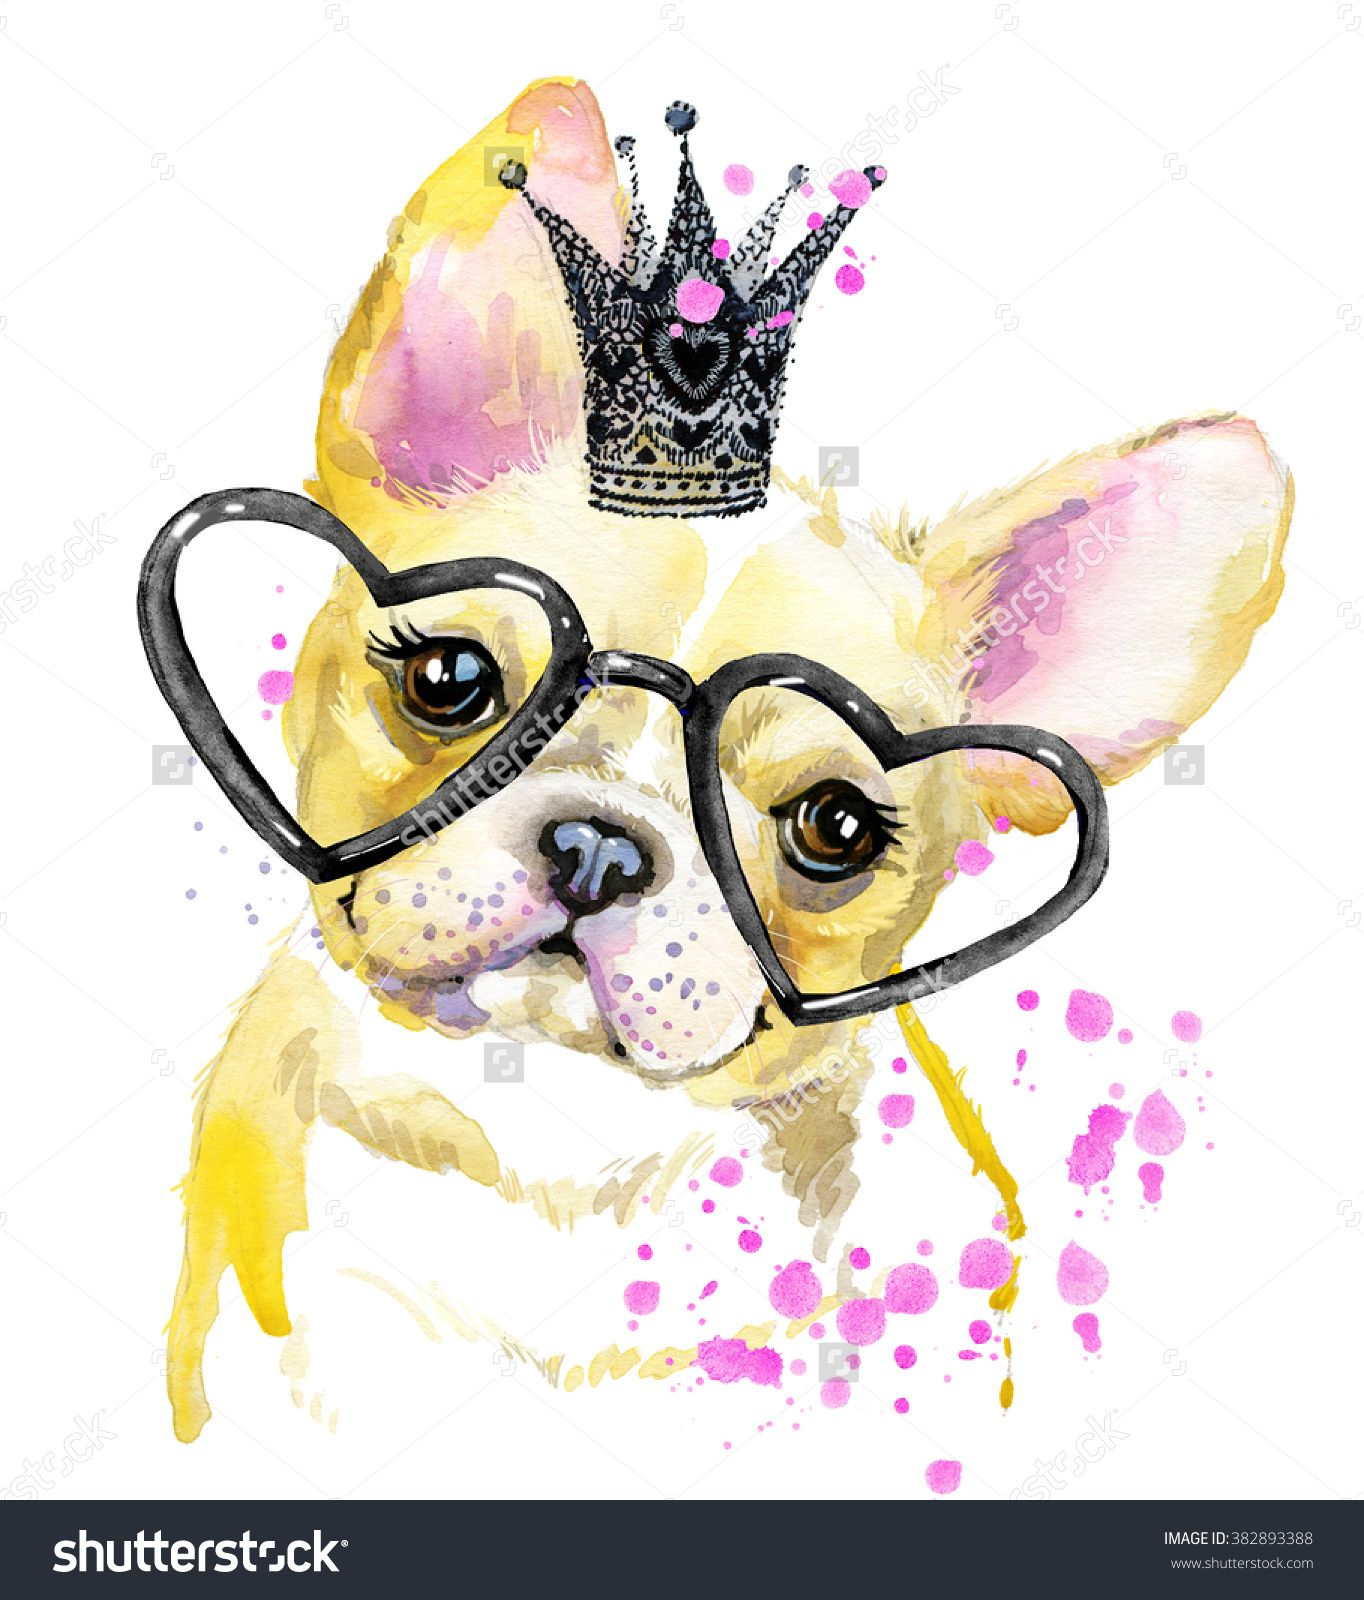 Cute Dog Dog T Shirt Graphics Watercolor Dog Illustration